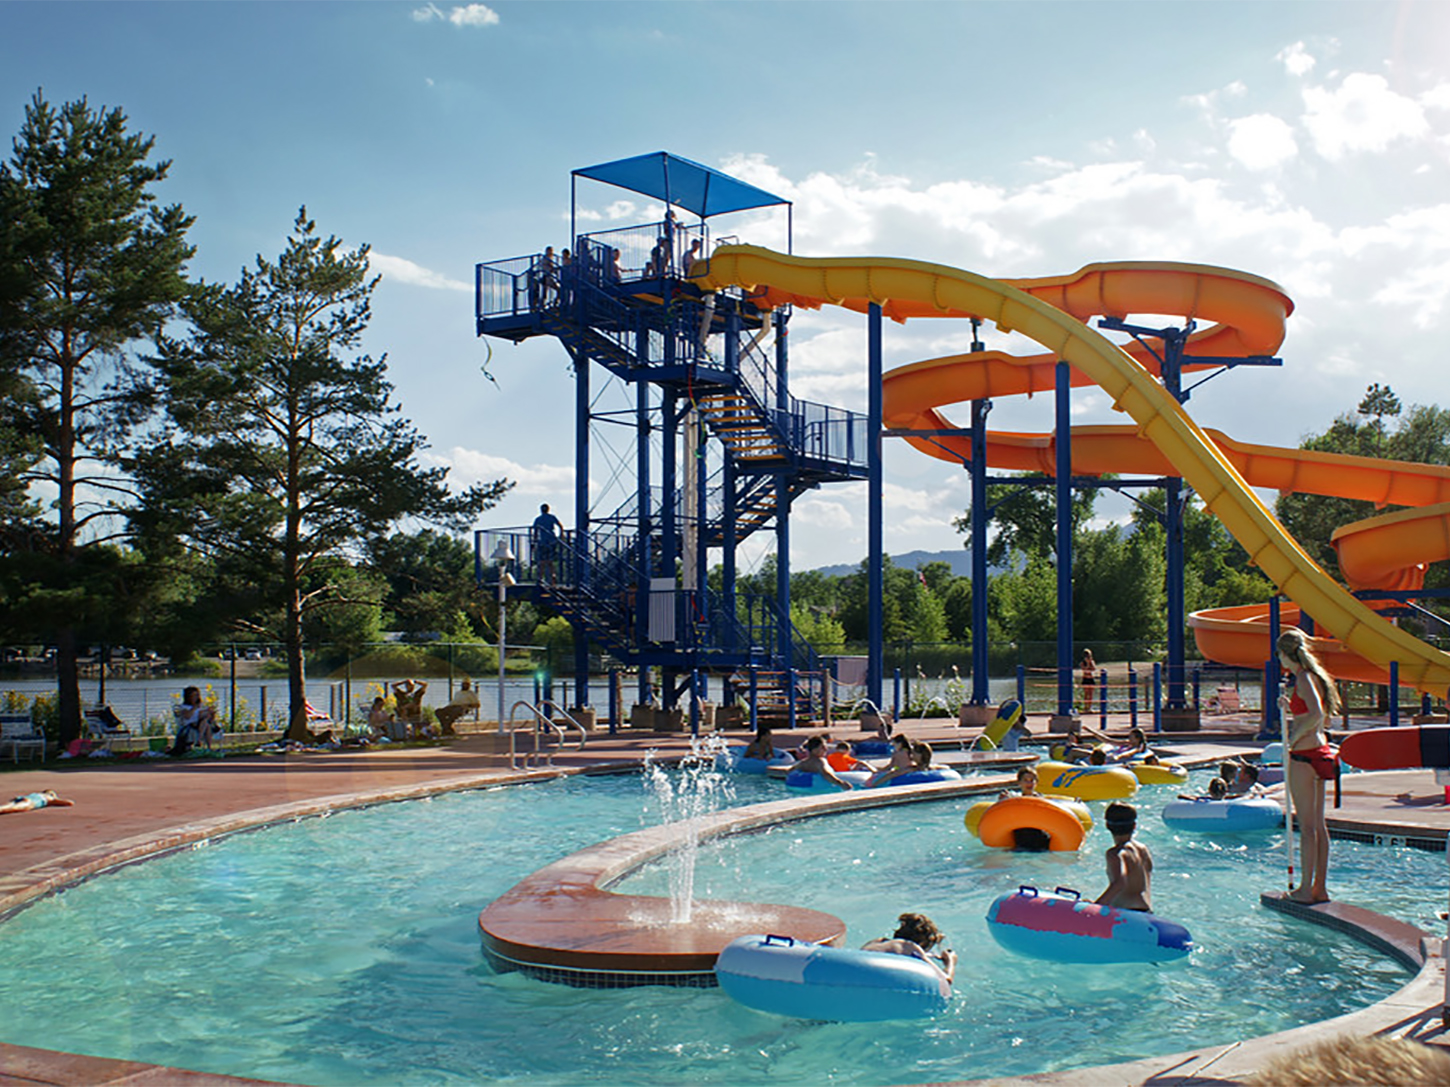 39-city_park_pool_fort_collins